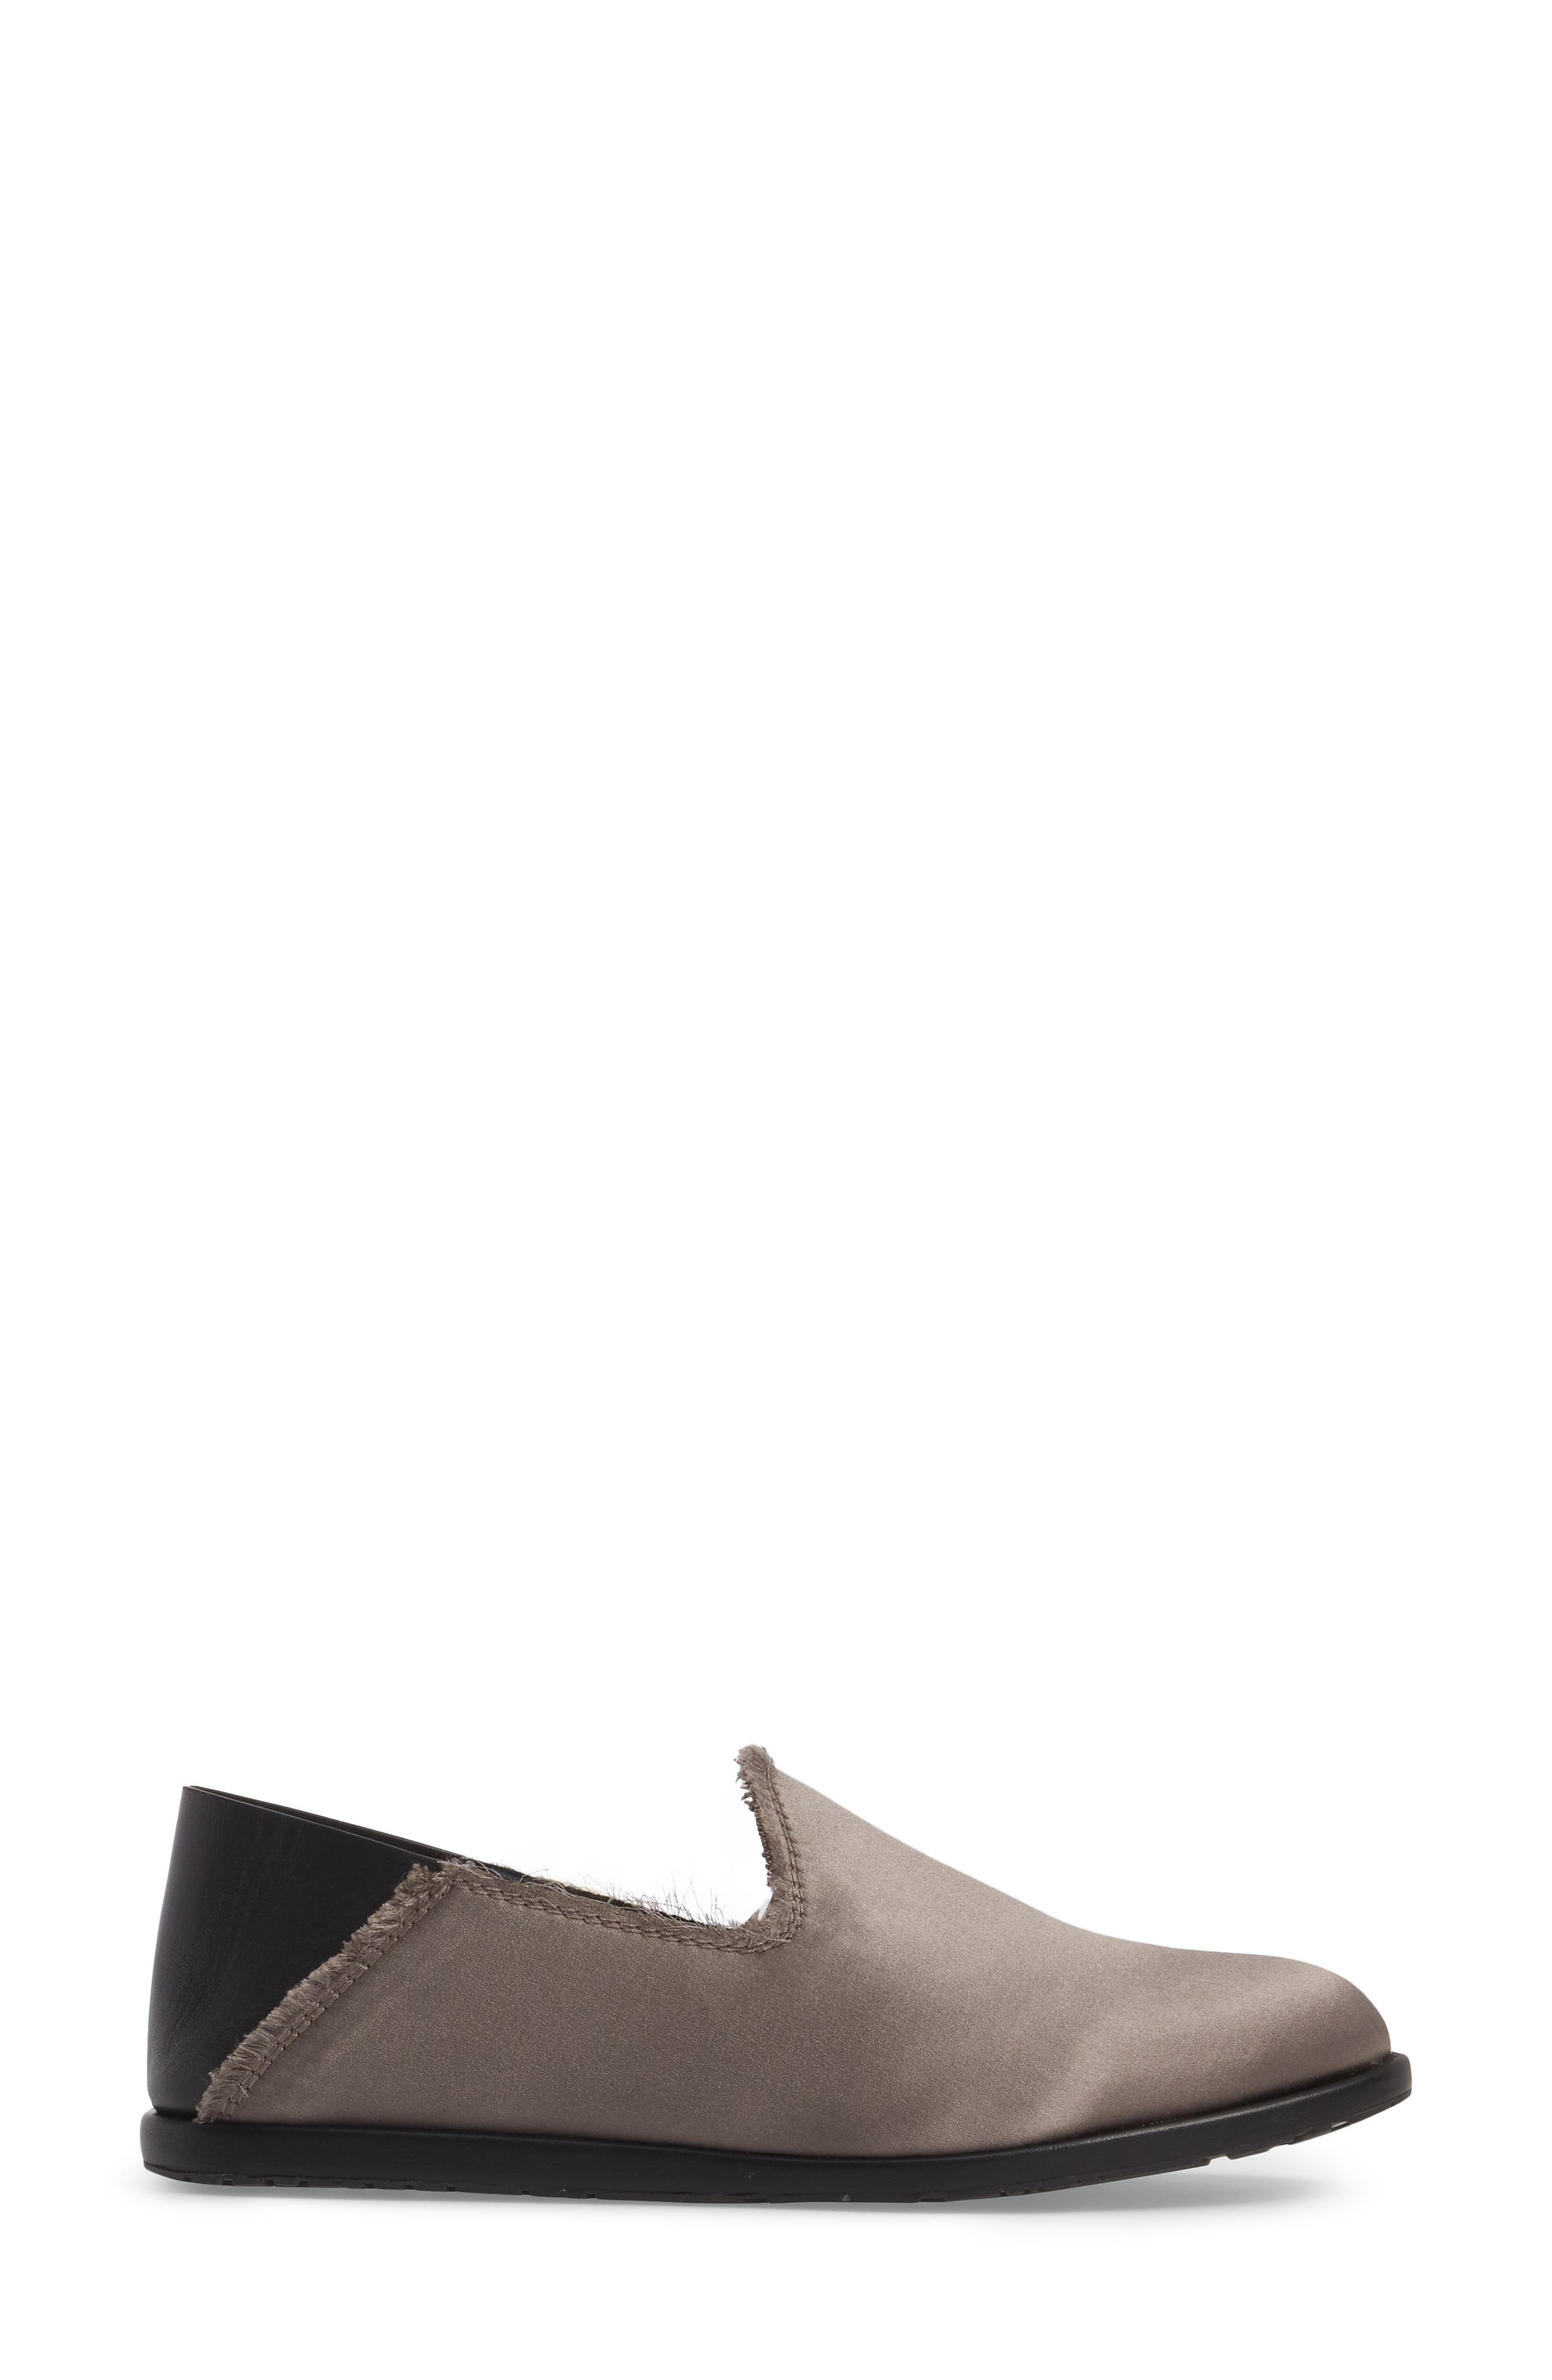 Yamir Convertible Loafer,                             Alternate thumbnail 2, color,                             Truffle Satin